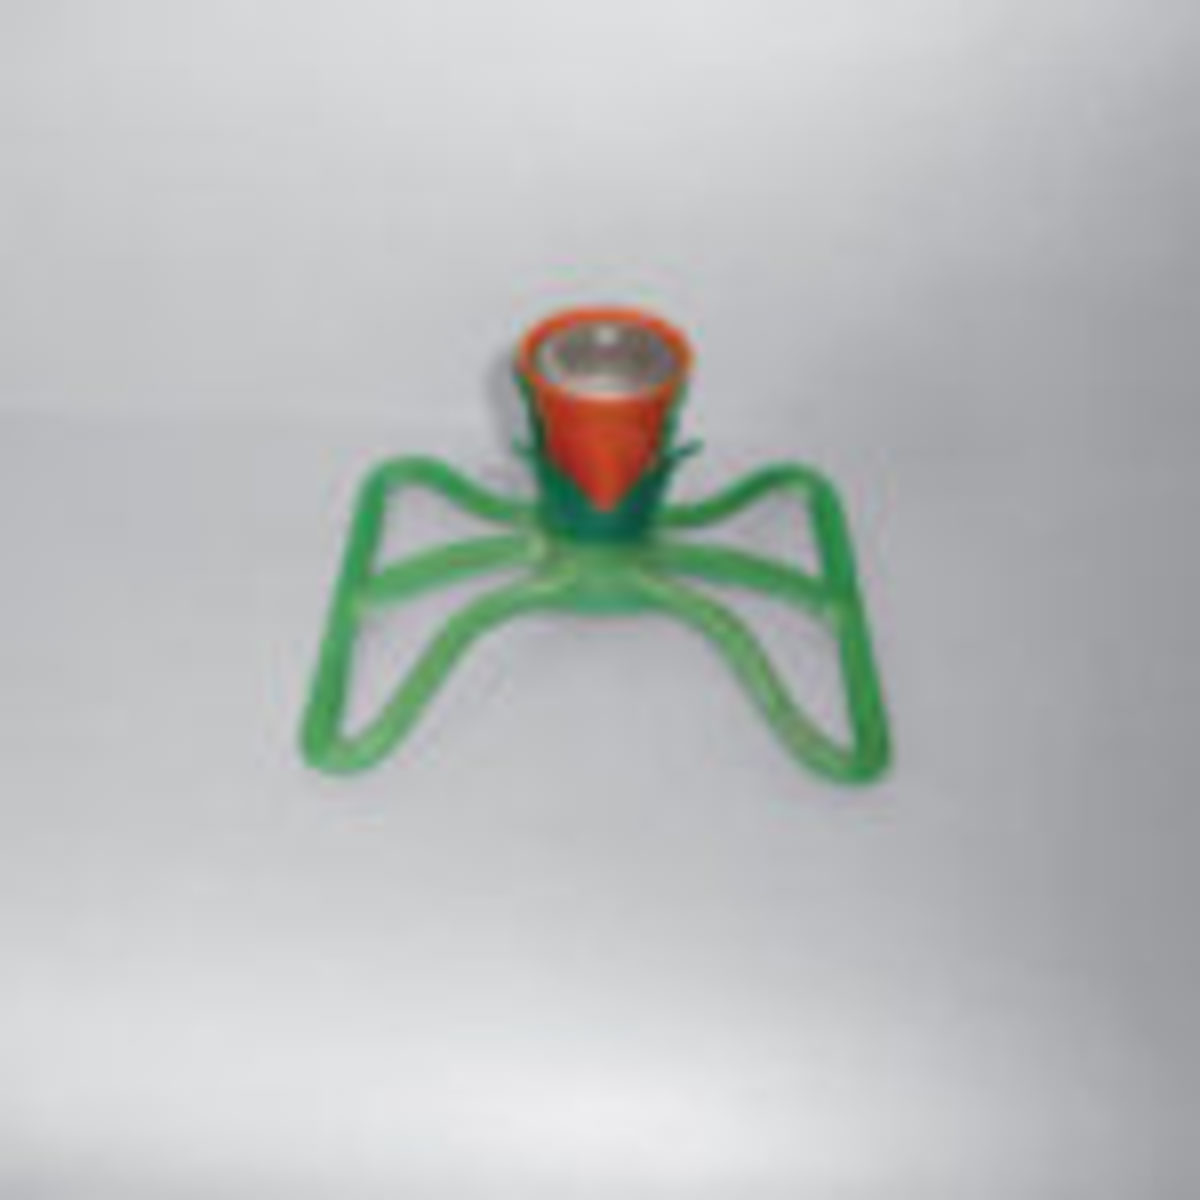 Small vintage flower shaped lawn sprinkler in red and green. $50-$60. From the author's collection.